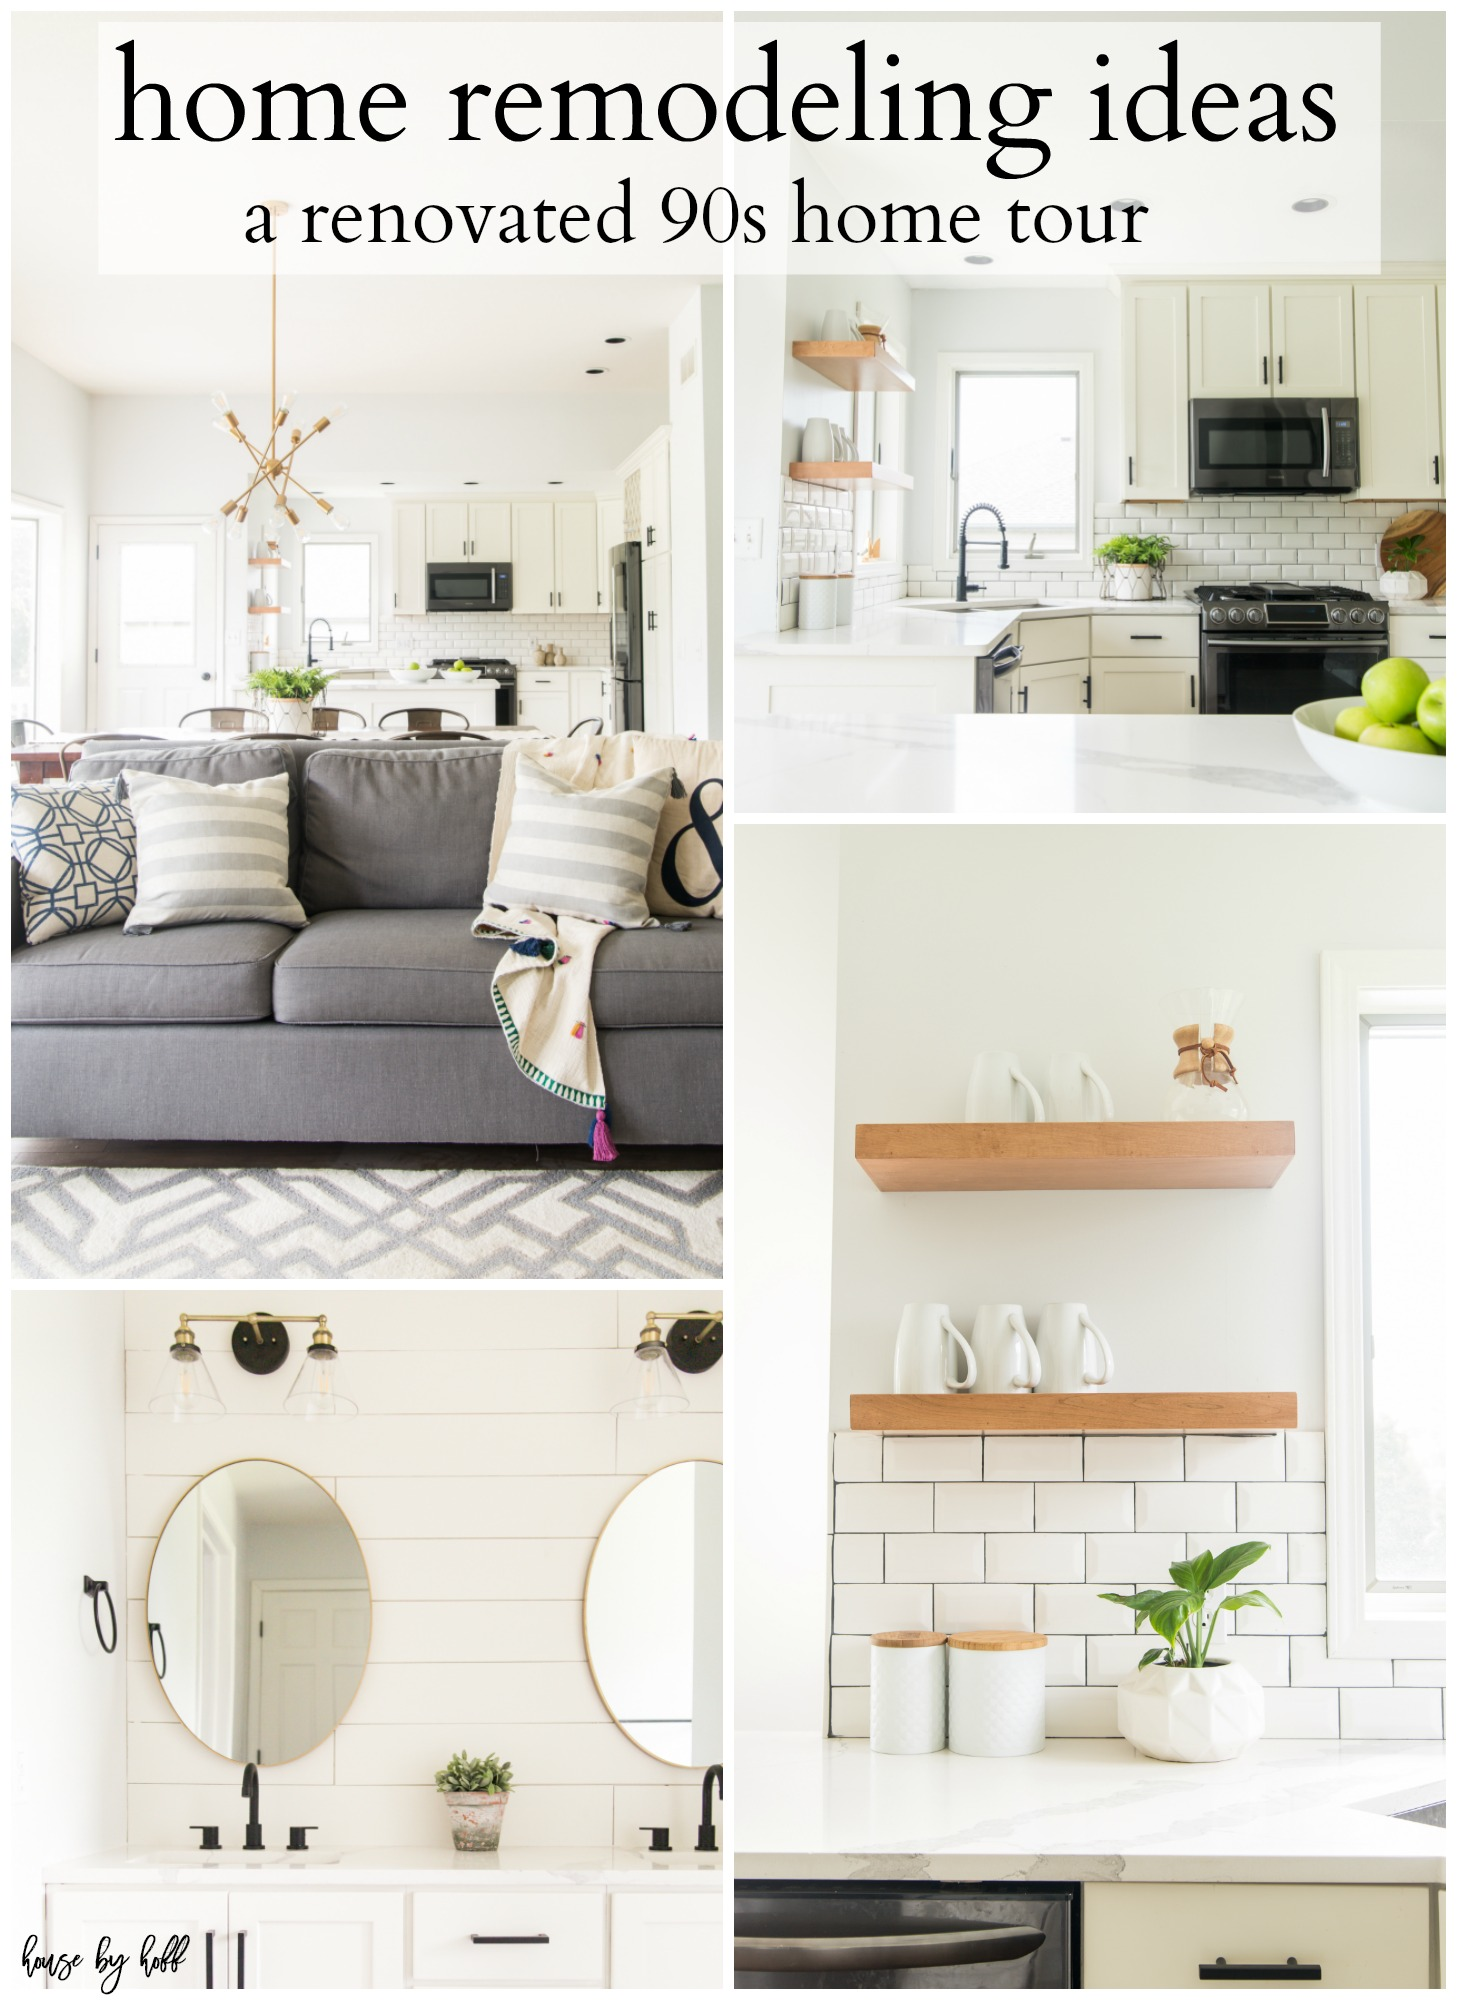 Home Remodeling Ideas House By Hoff